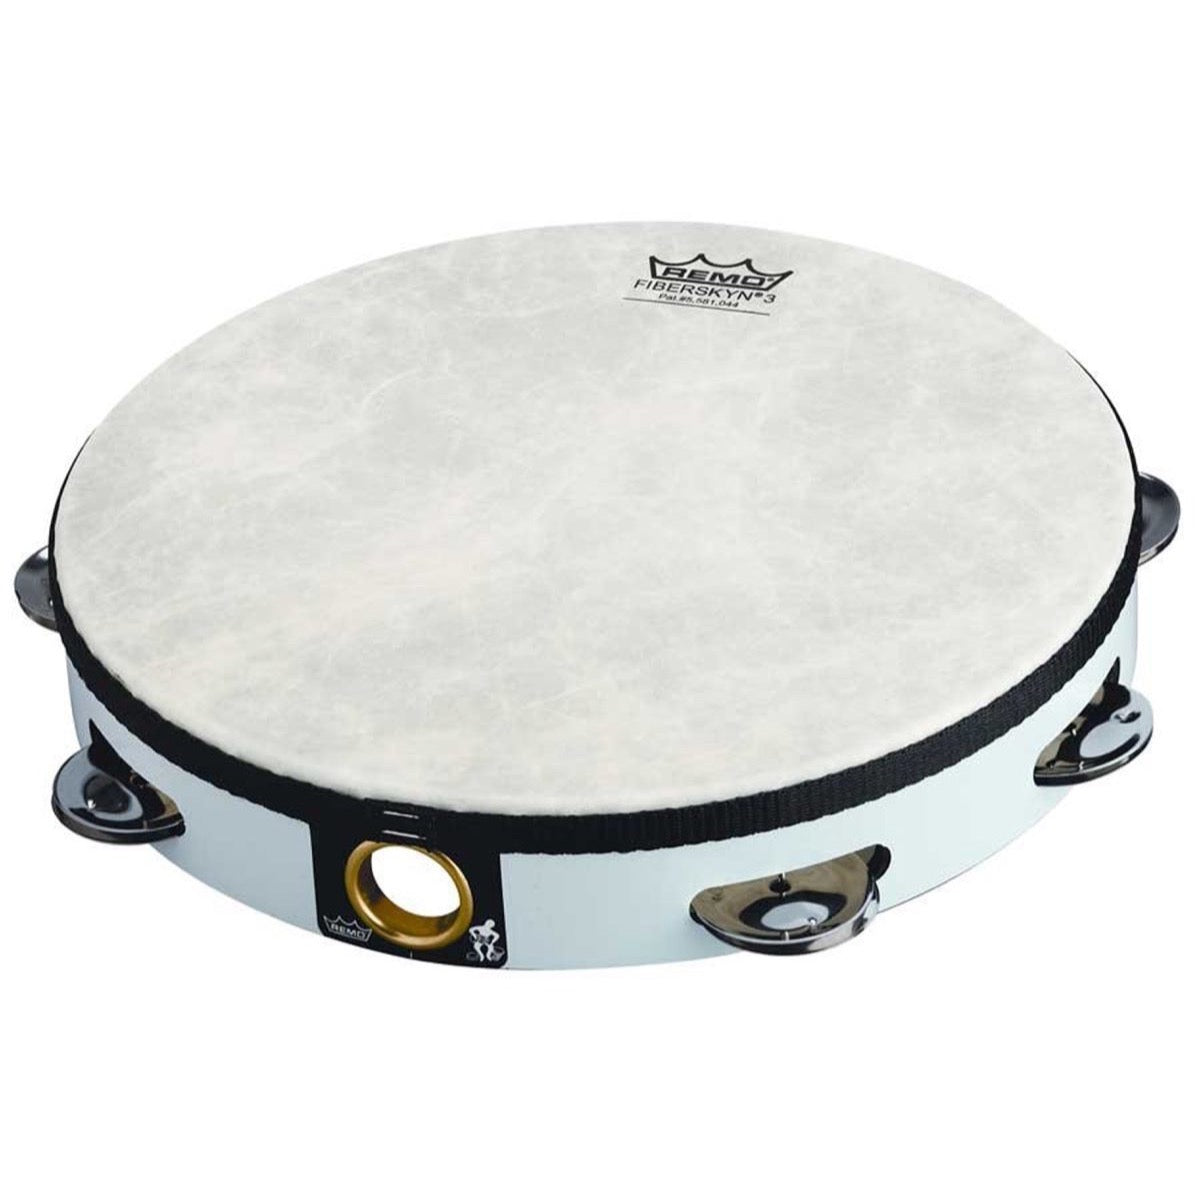 Remo Fiberskyn 3 Pretuned Head Tambourine (Double Row), White, TA-5210-00, 10 Inch